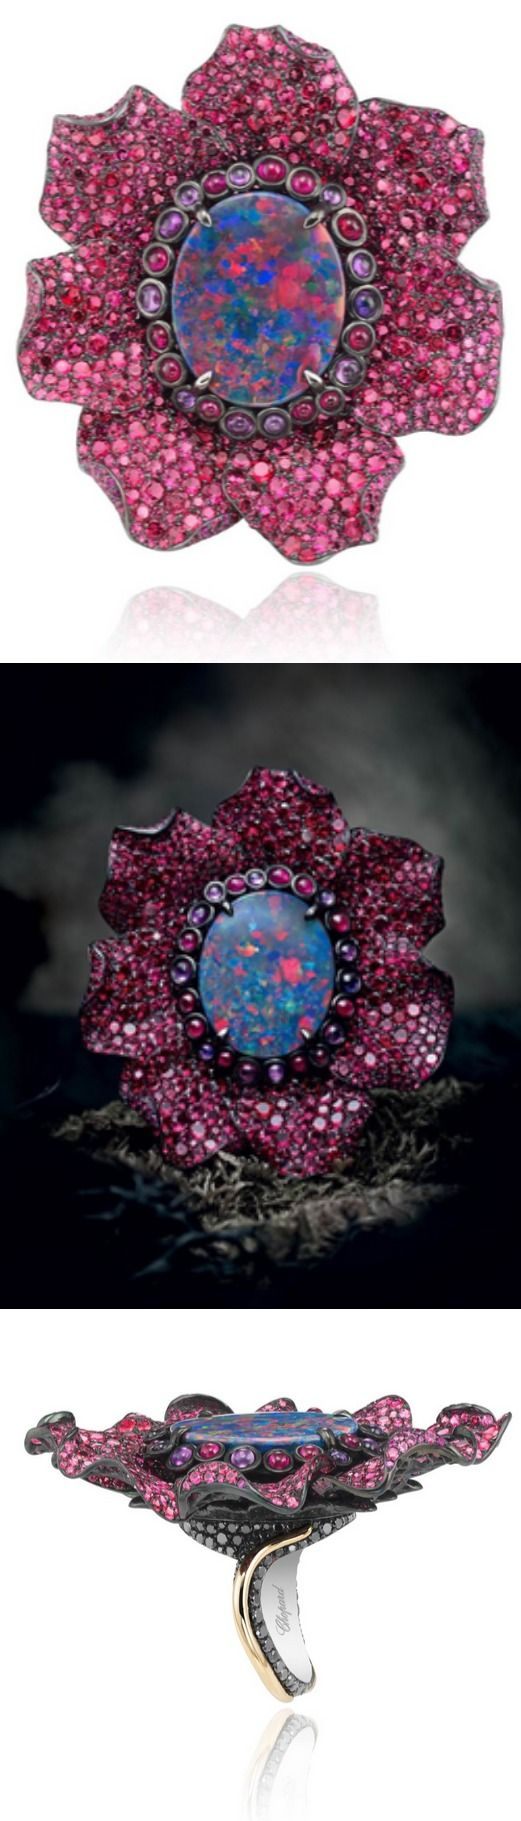 IN COLORFUL BLOOM: CHOPARD'S FLEURS D'OPALES CAPSULE COLLECTION The third creation showcases a wider spectrum of color in its 9-carat black opal, whose coveted red play-of-color is amplified by the ruby and purple sapphire pistils surrounding it. The fiery hue is further echoed in the pink spinel petals, which are made of zirconium. Black diamond-set rose and white gold entwine to form the body of the ring.